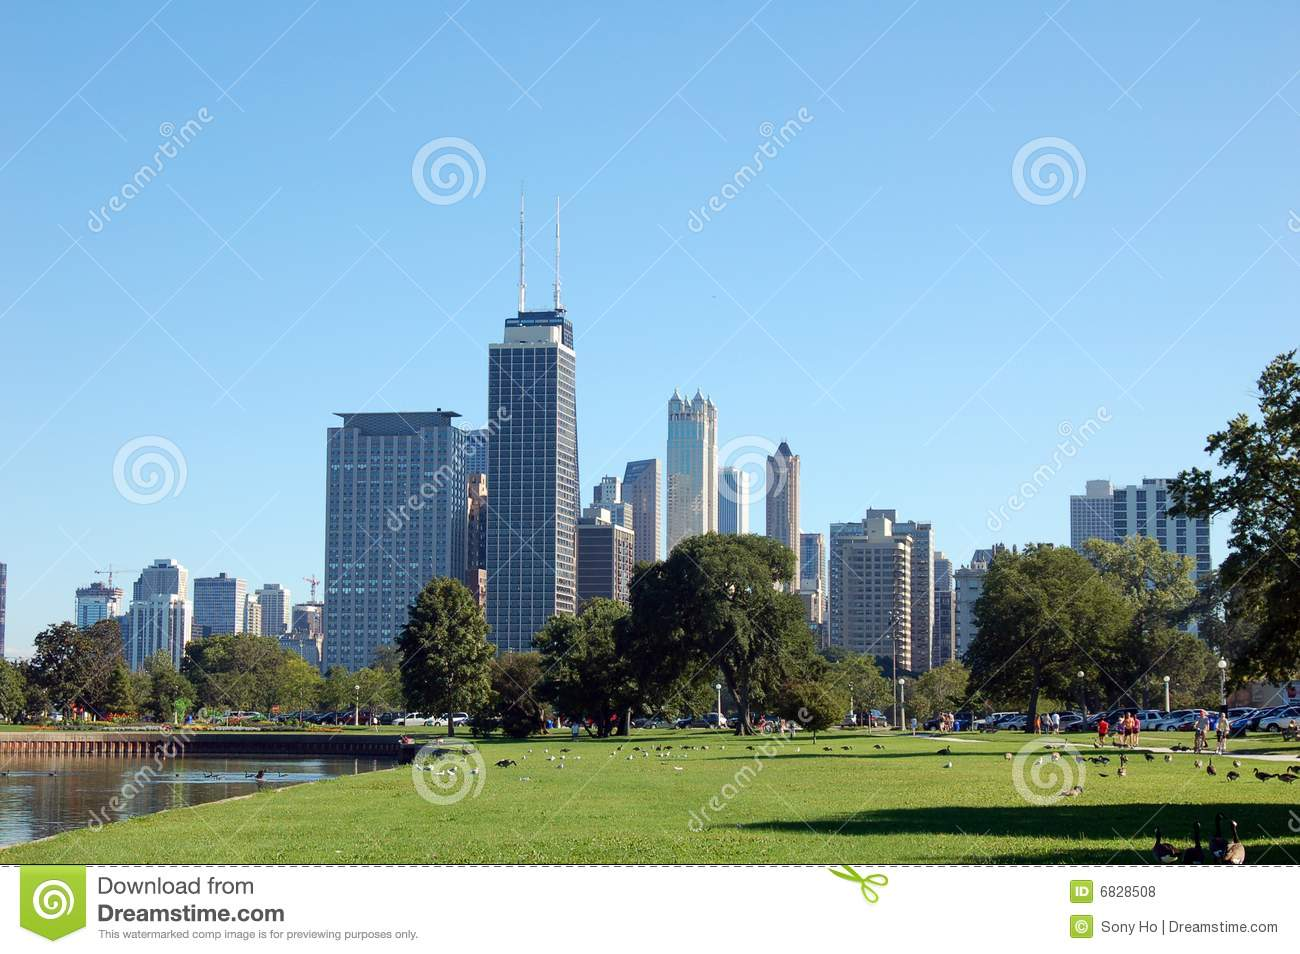 Chicago landscape royalty free stock photos image 6828508 for Chicago landscape